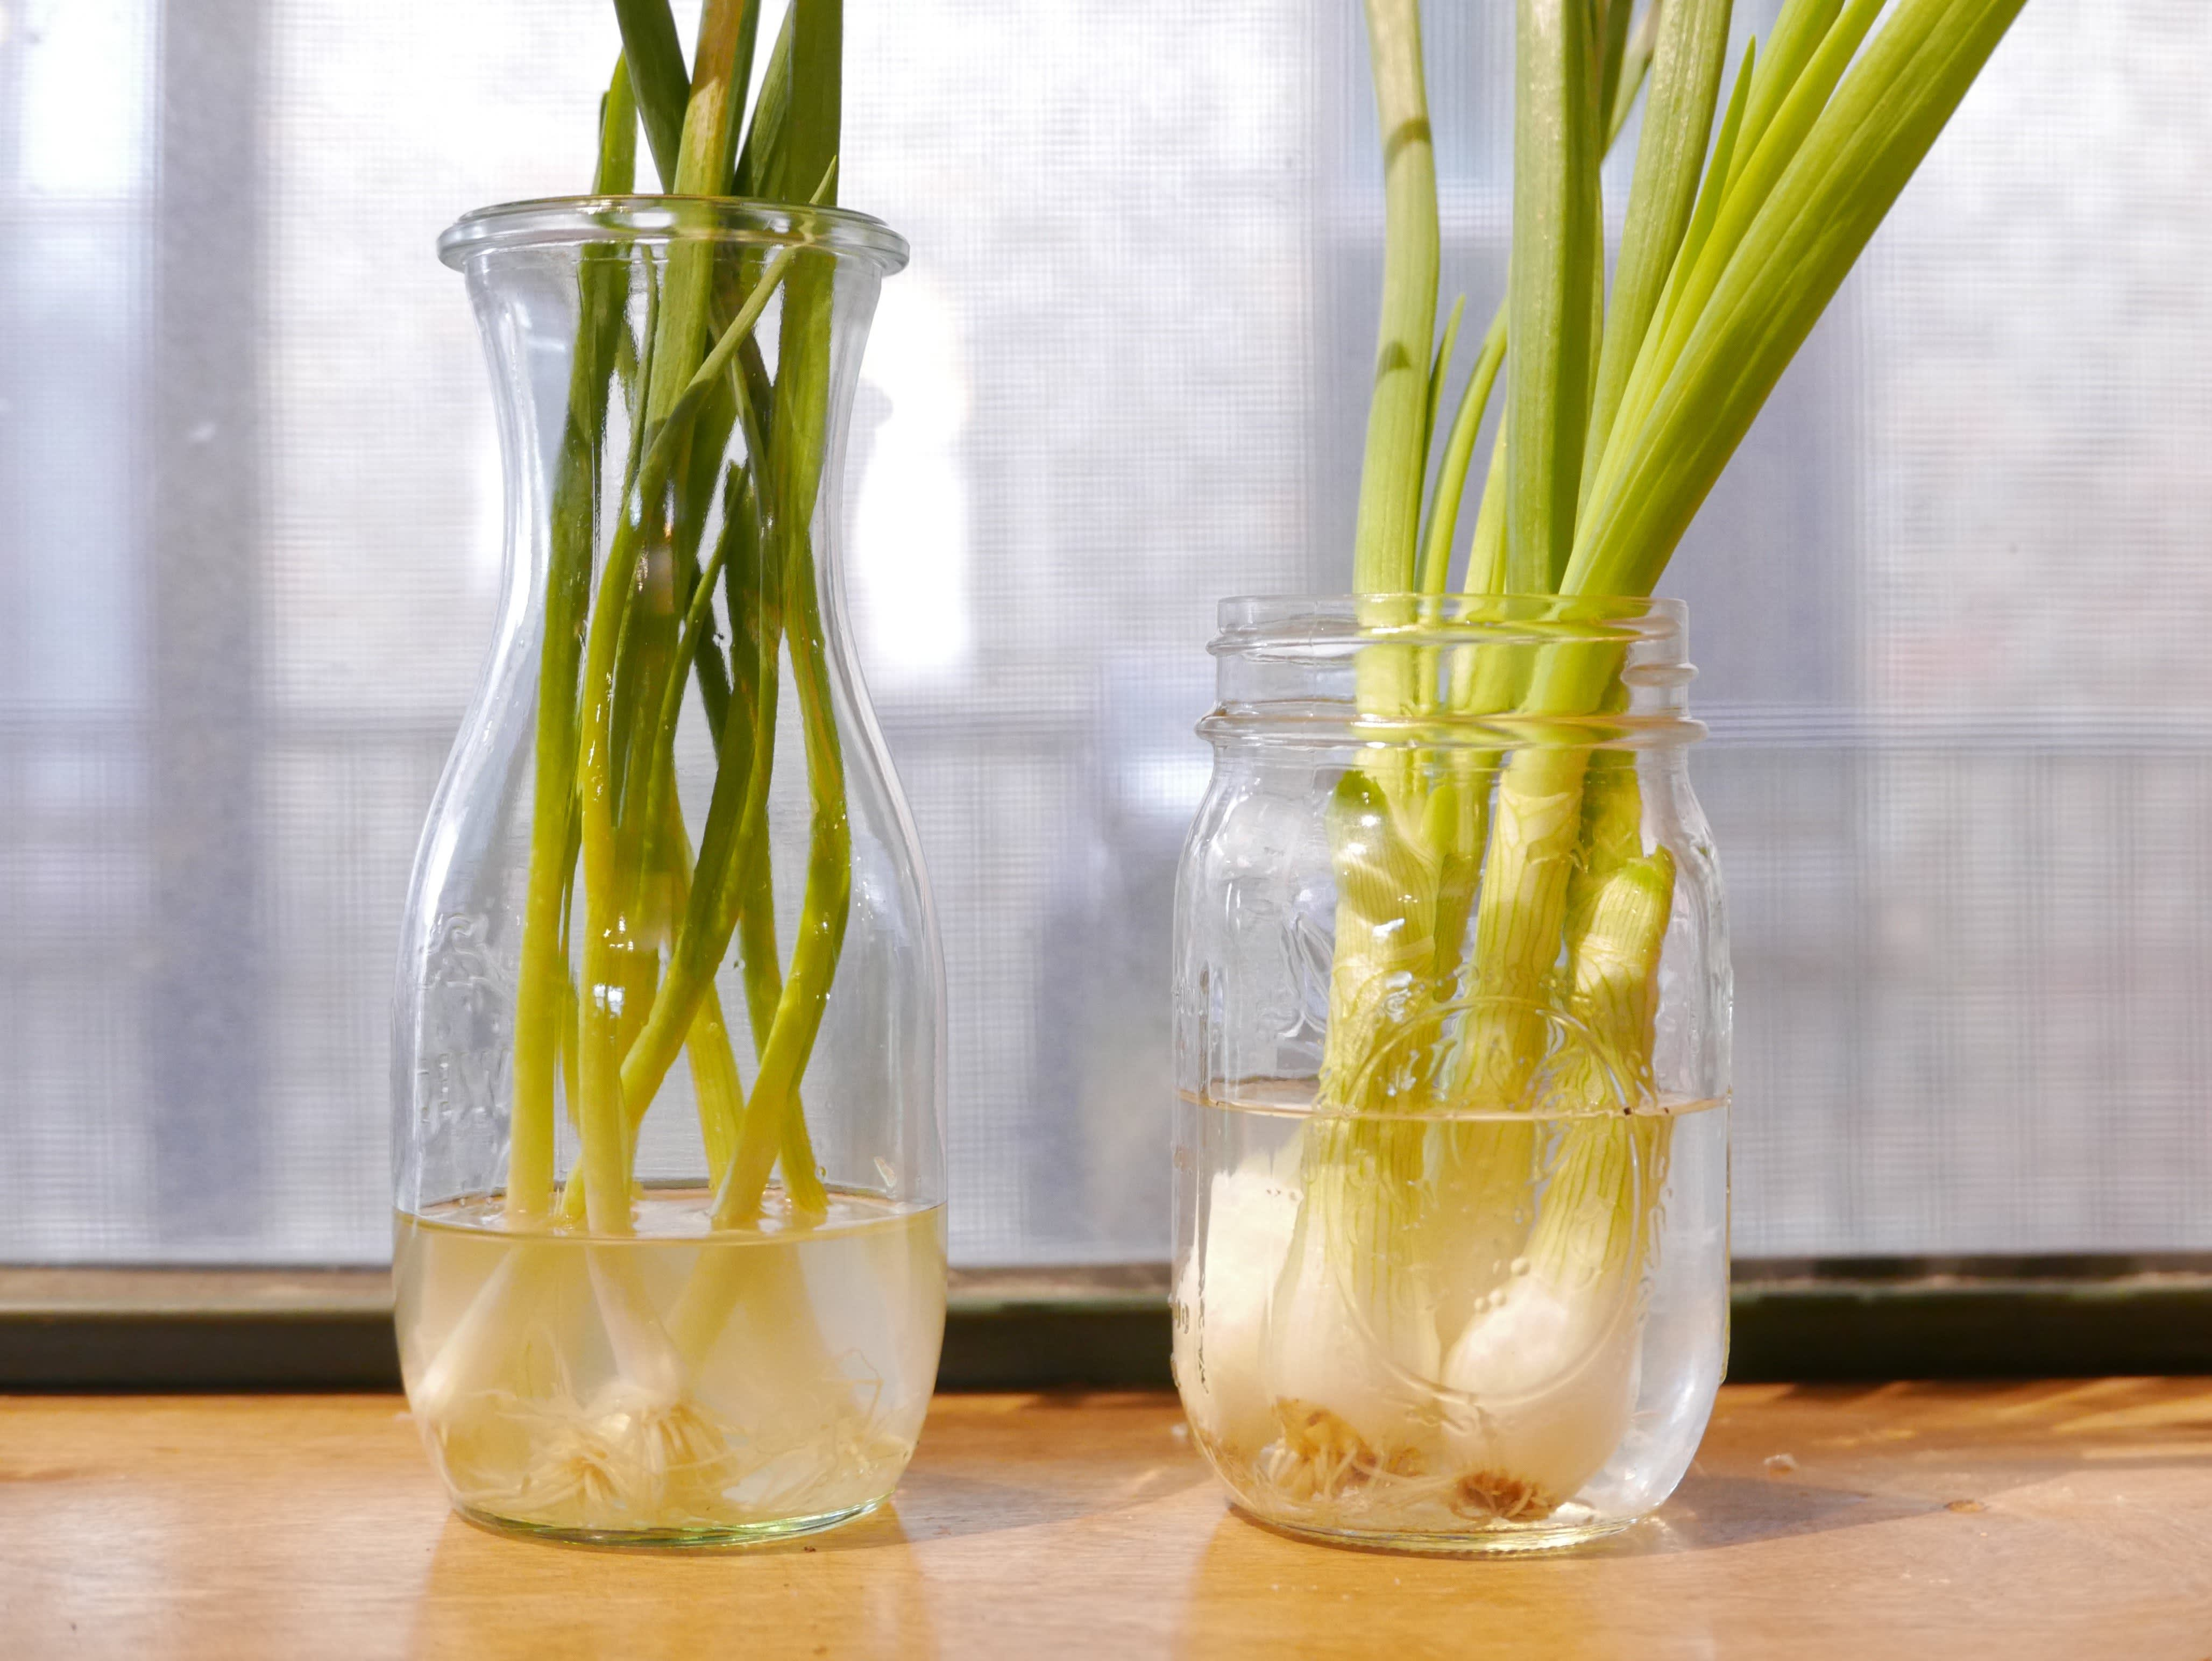 spring onions in water